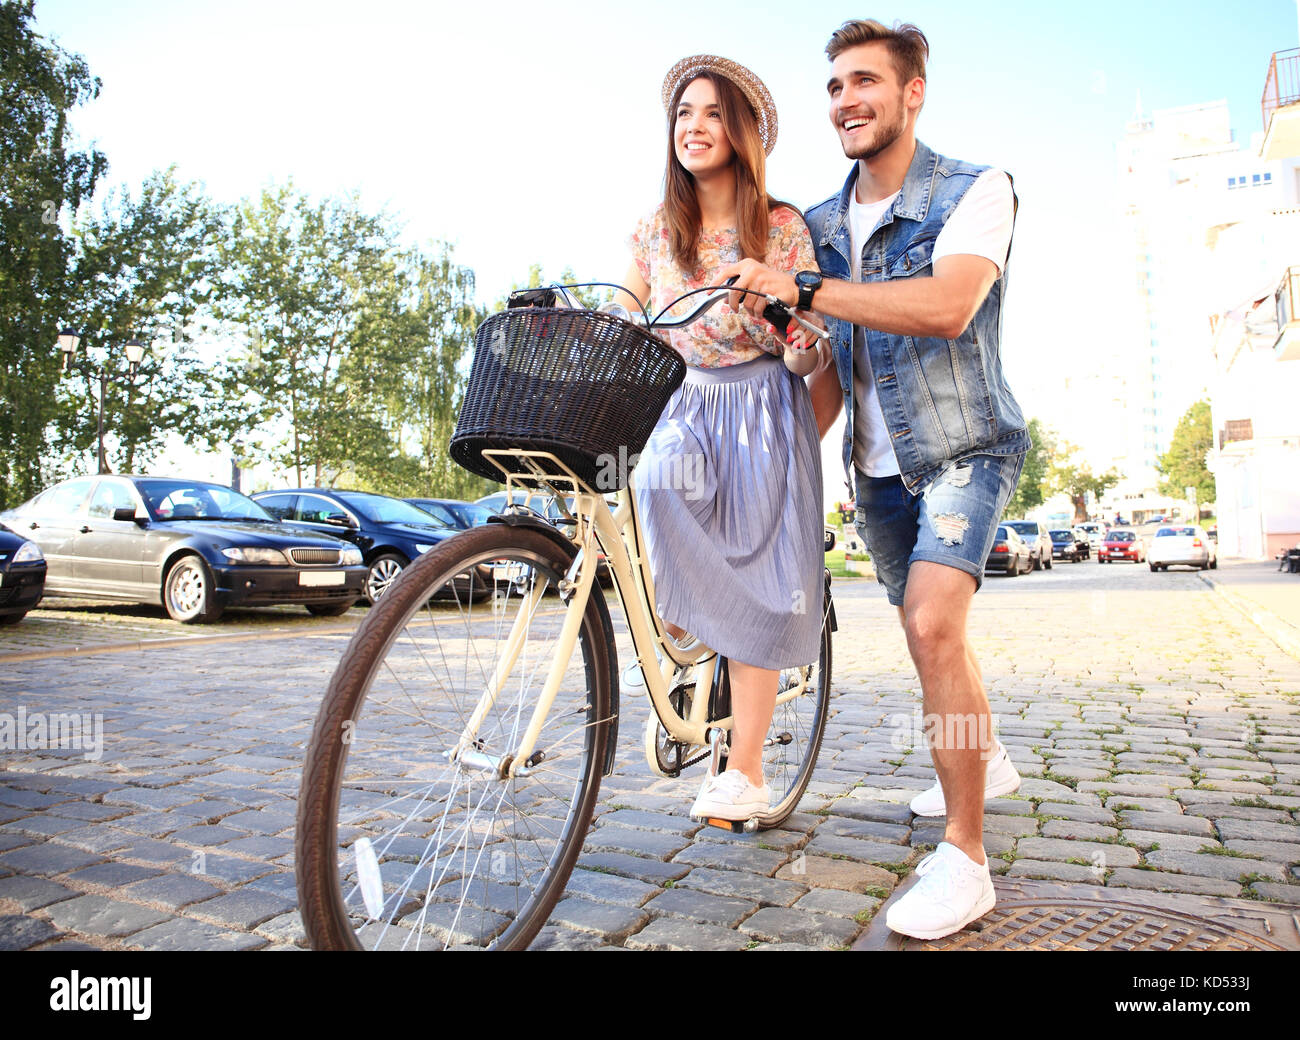 Happy young couple going for a bike ride on a summer day in the city.They are having fun together. - Stock Image